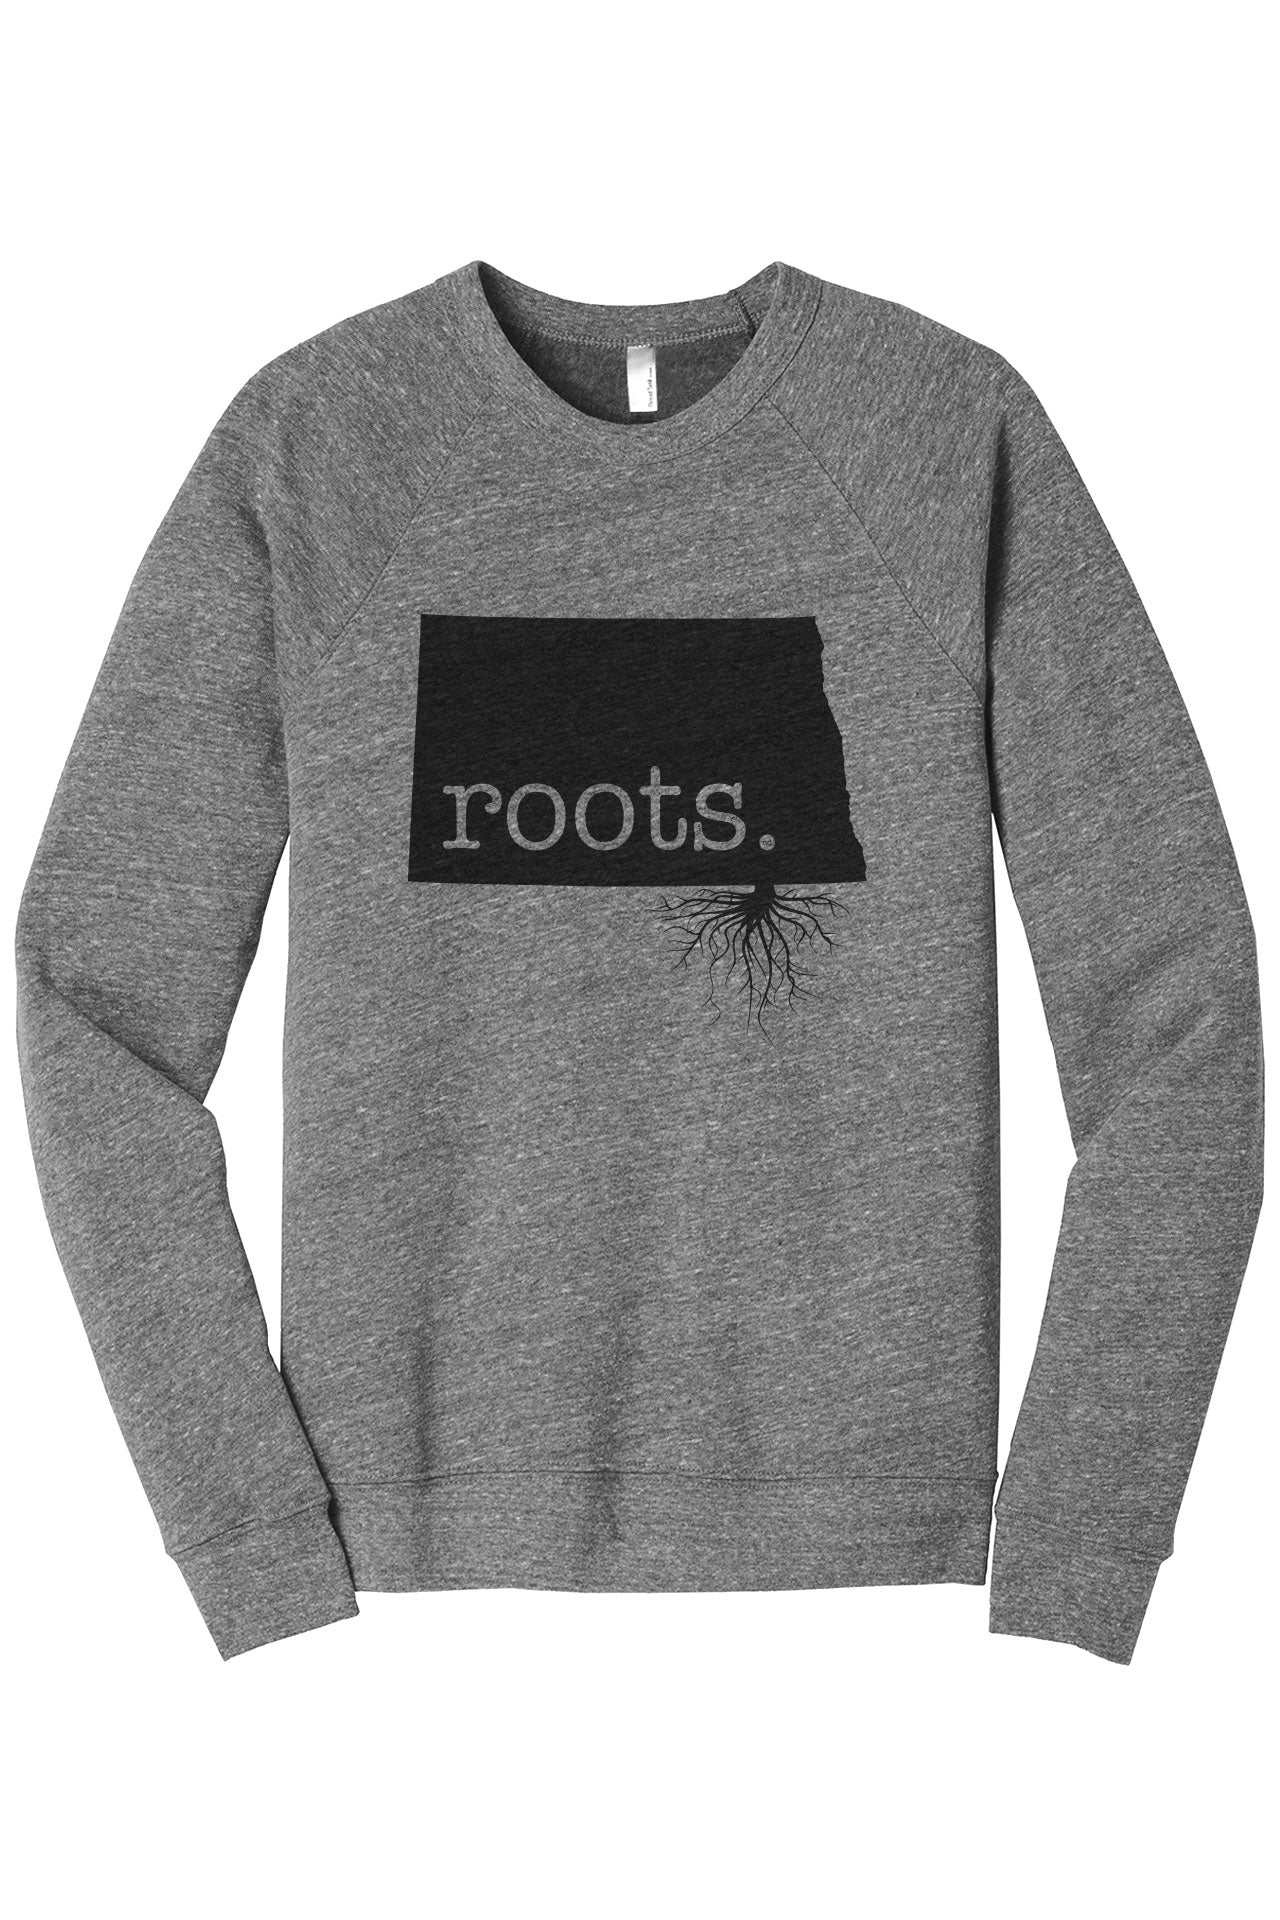 Home Roots State North Dakota ND Cozy Unisex Fleece Longsleeves Sweater Heather Grey FRONT